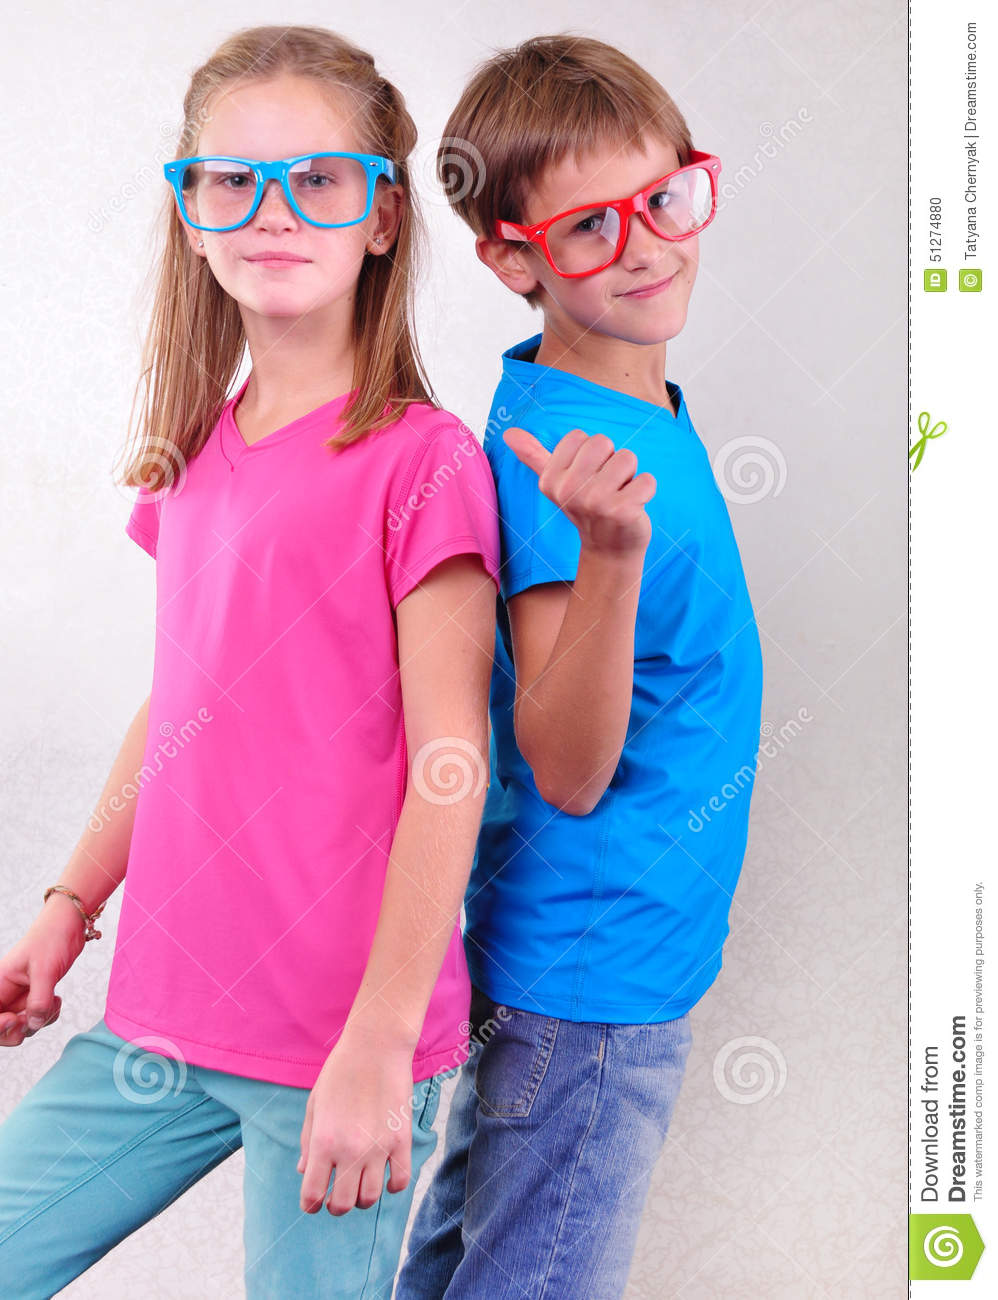 Playful Twin Brother And Sister Have Fun Stock Photo ...